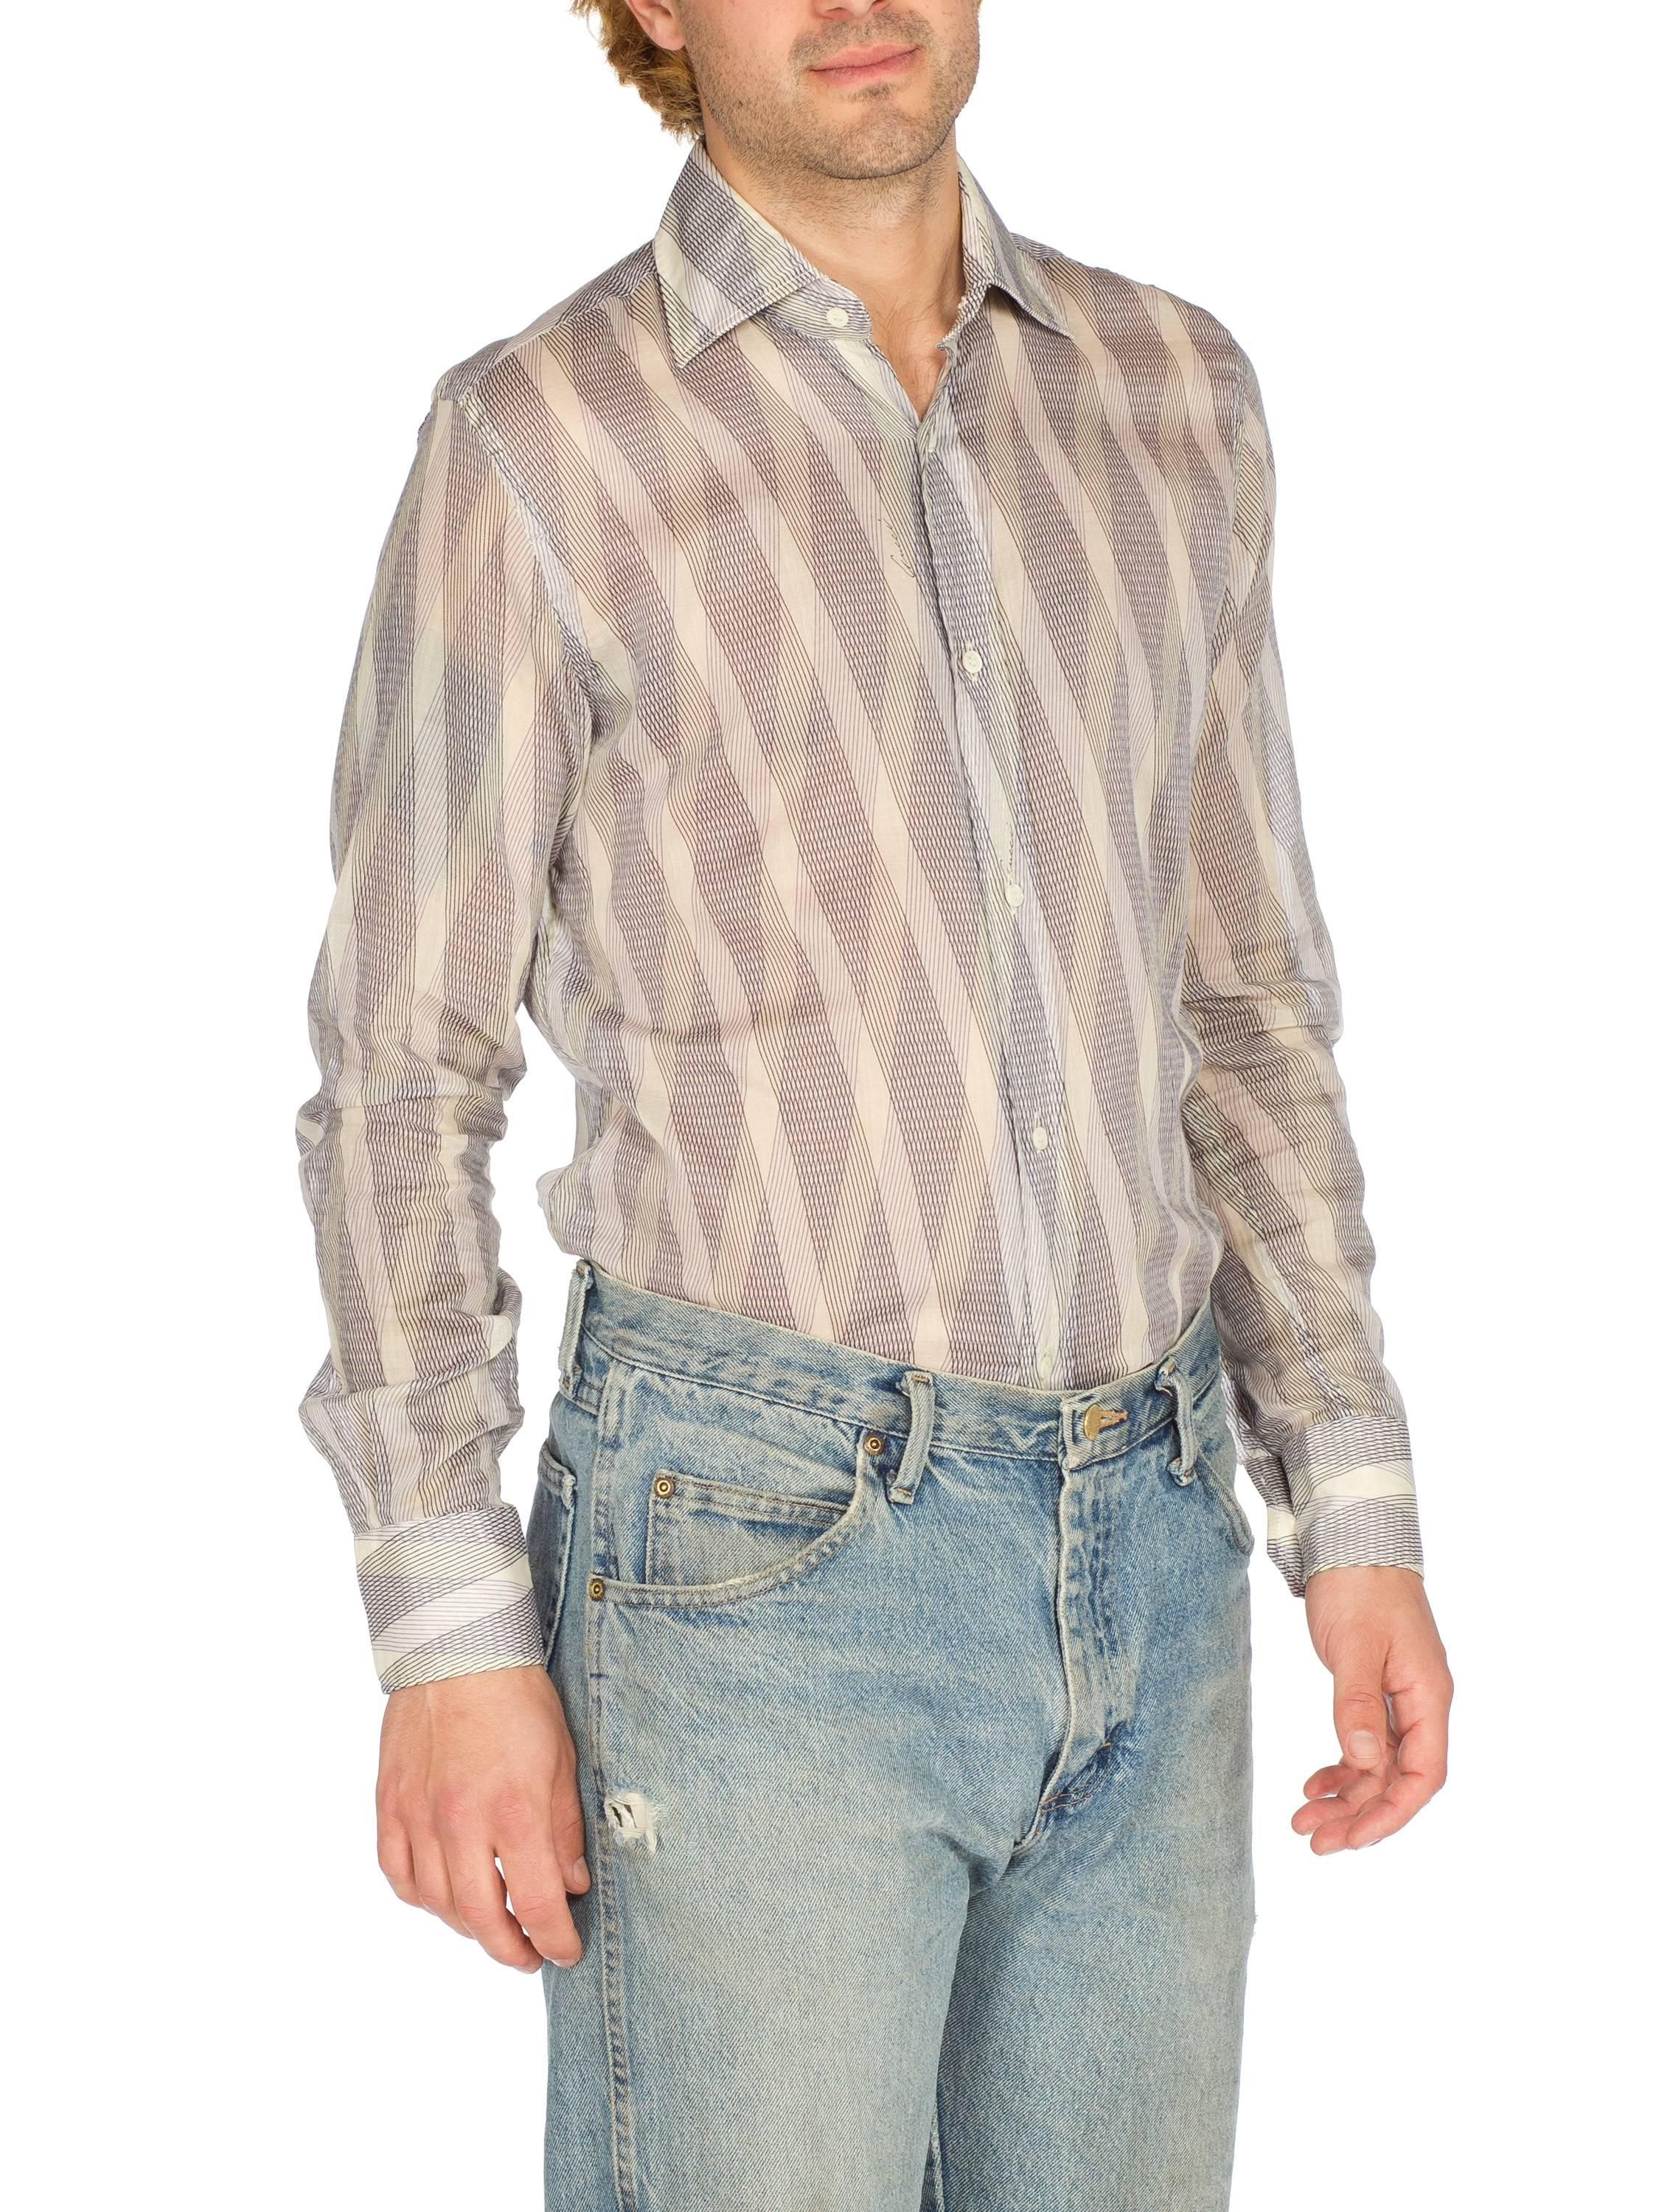 Tom Ford Gucci Sheer Cotton Mens Shirt For Sale At 1stdibs